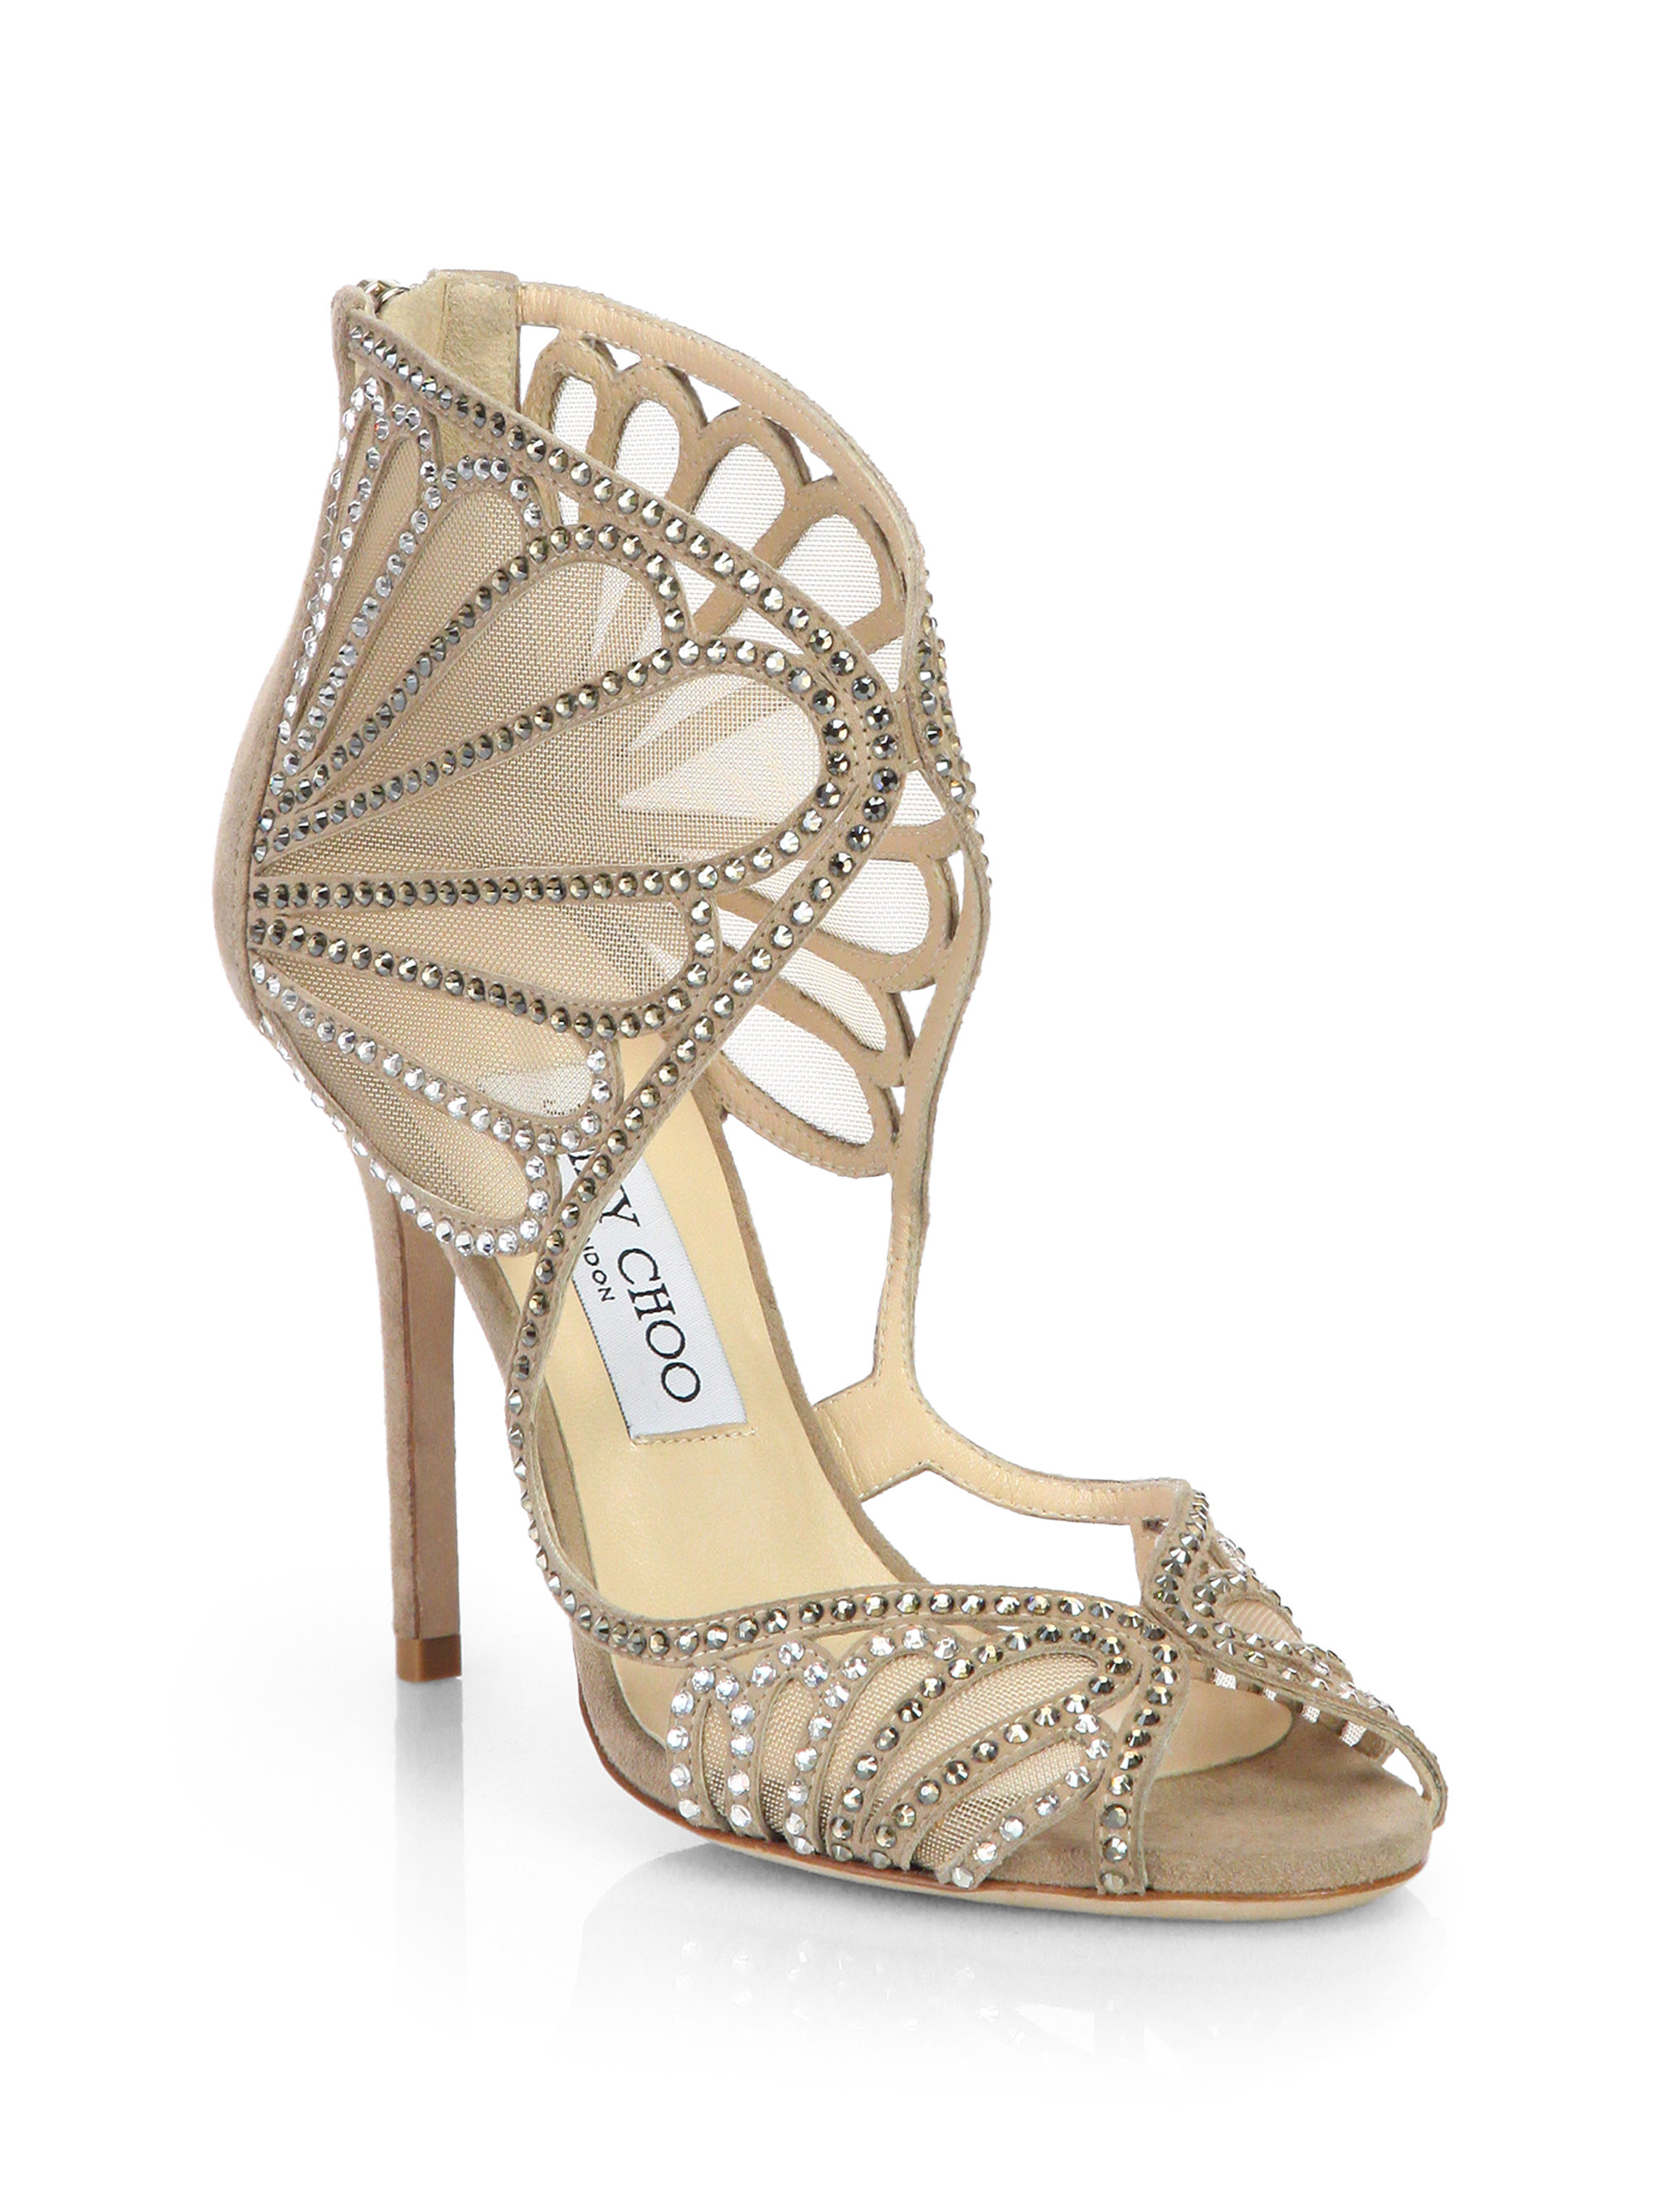 Cinderella Slippers Jimmy Choo Division Of Global Affairs